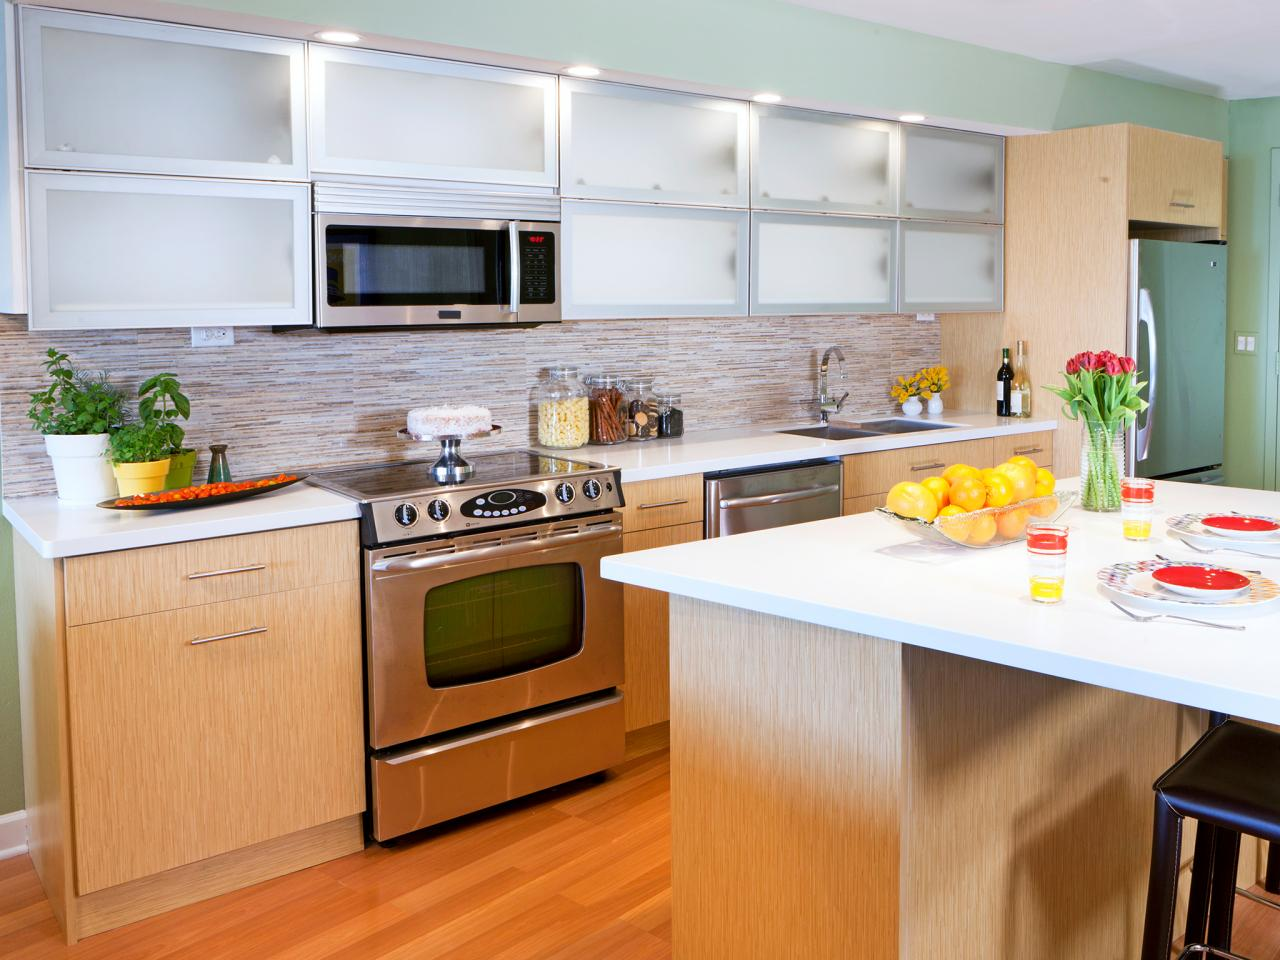 Custom Made Kitchen Cabinets Make the Difference